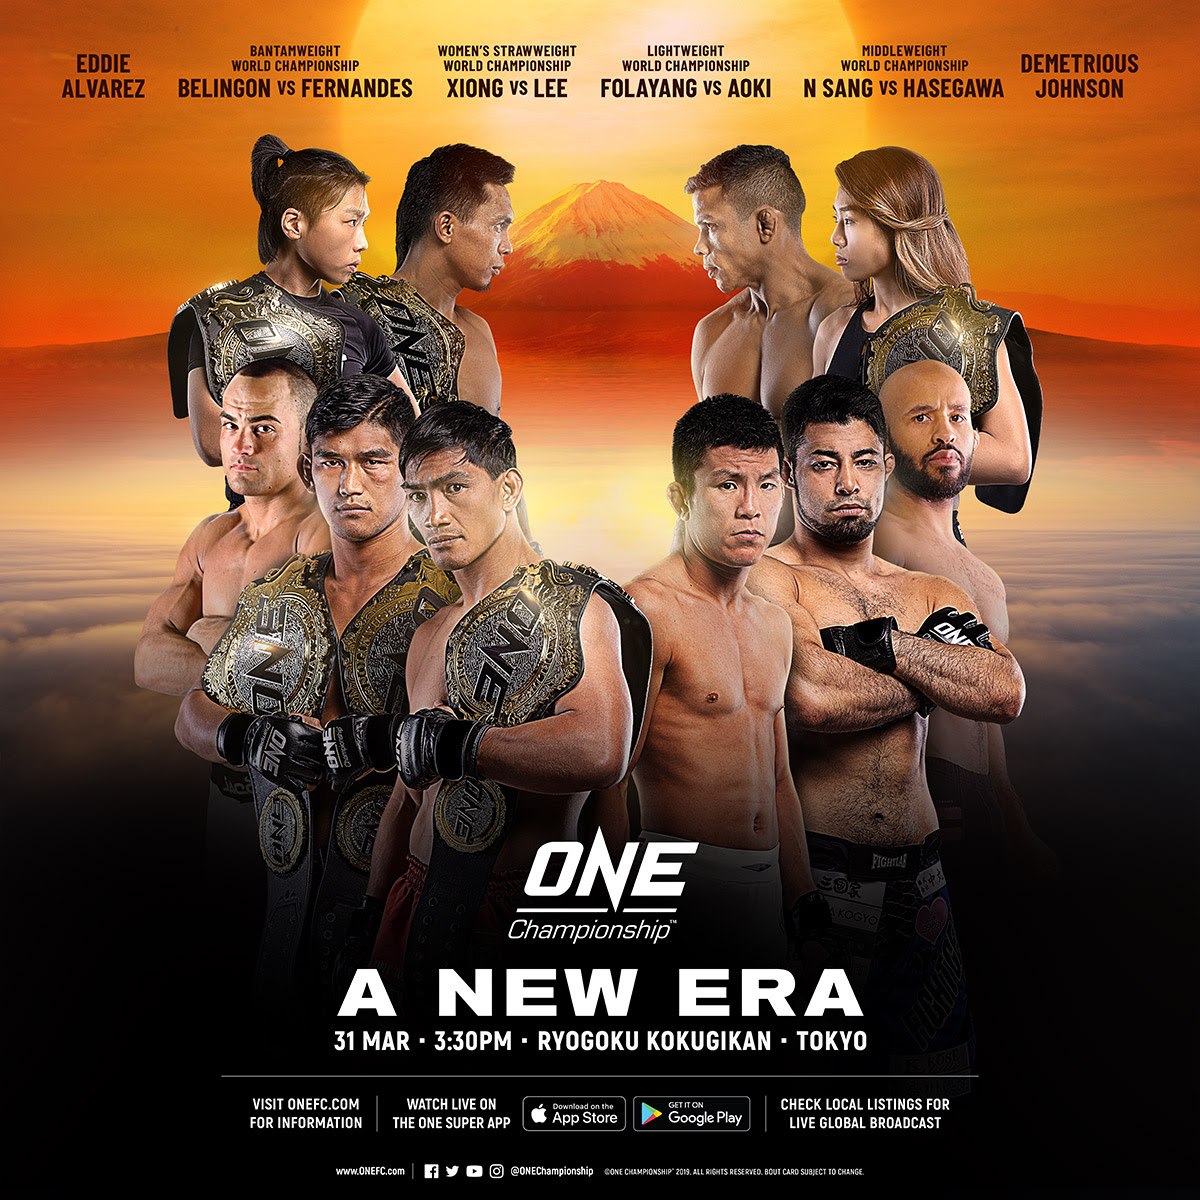 🔴 COMPLETE CARD ANNOUNCED FOR ONE: A NEW ERA ON 31 MARCH IN TOKYO -